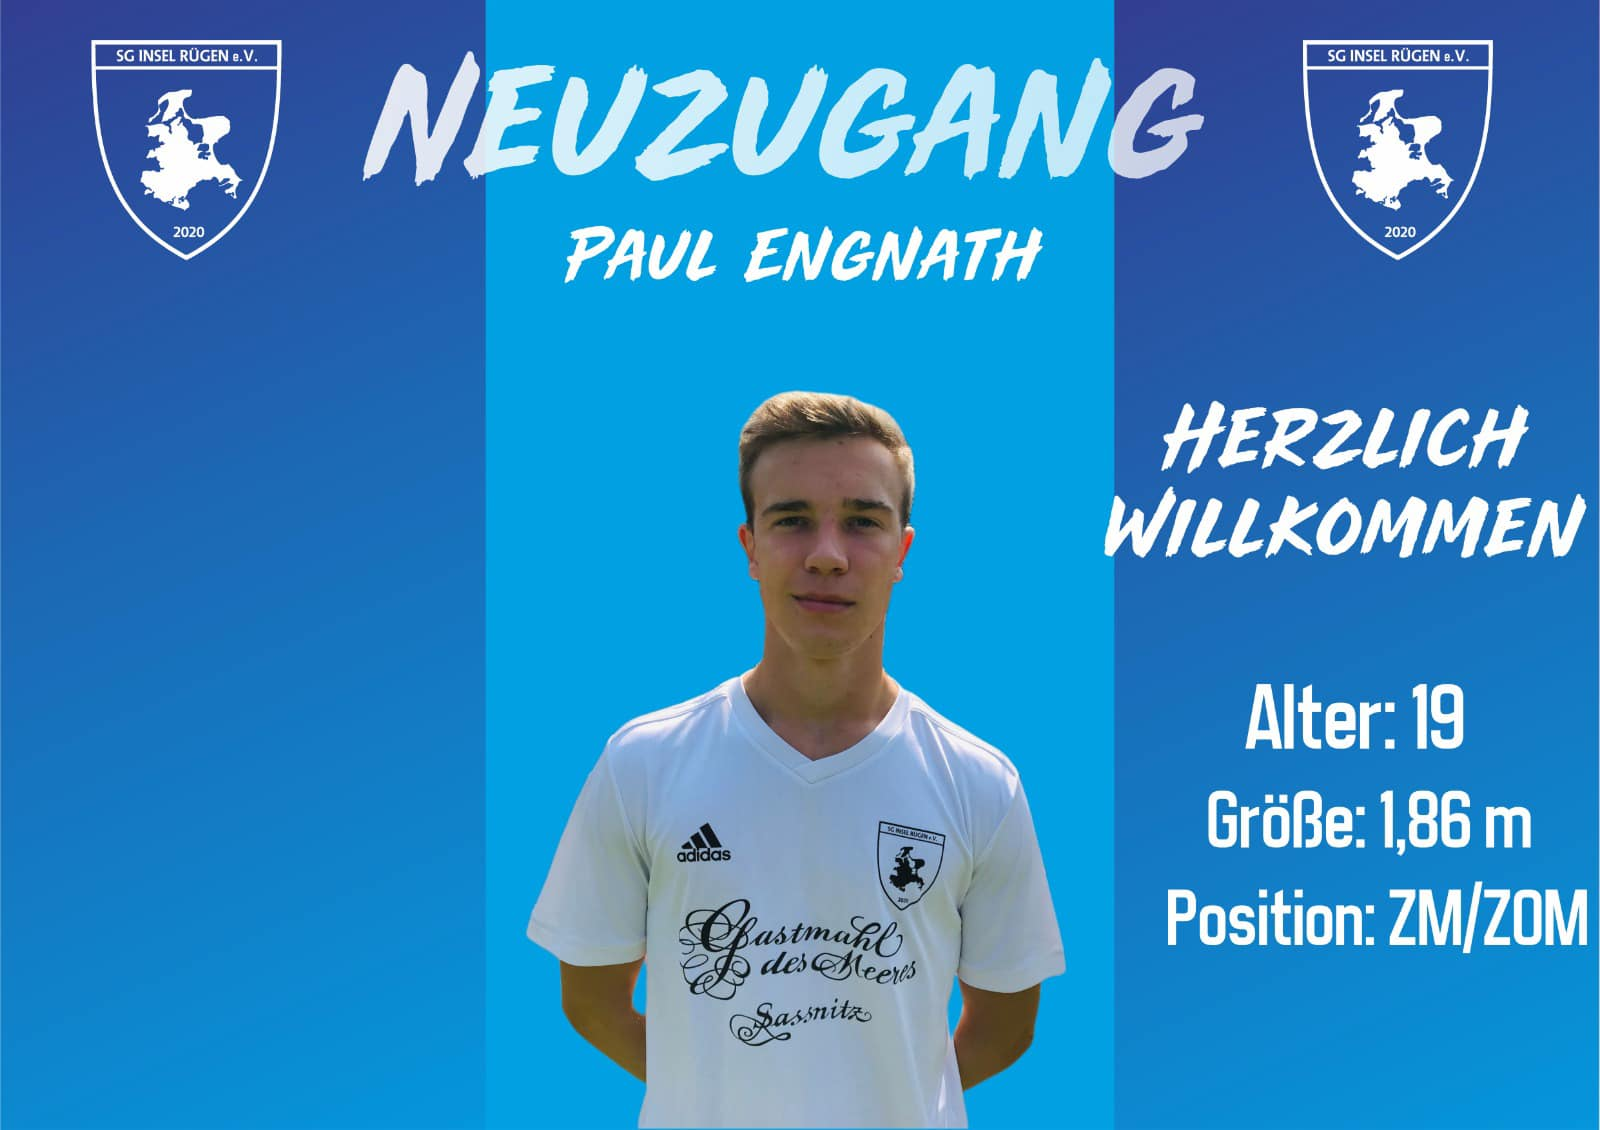 You are currently viewing Neuzugang Paul Engnath